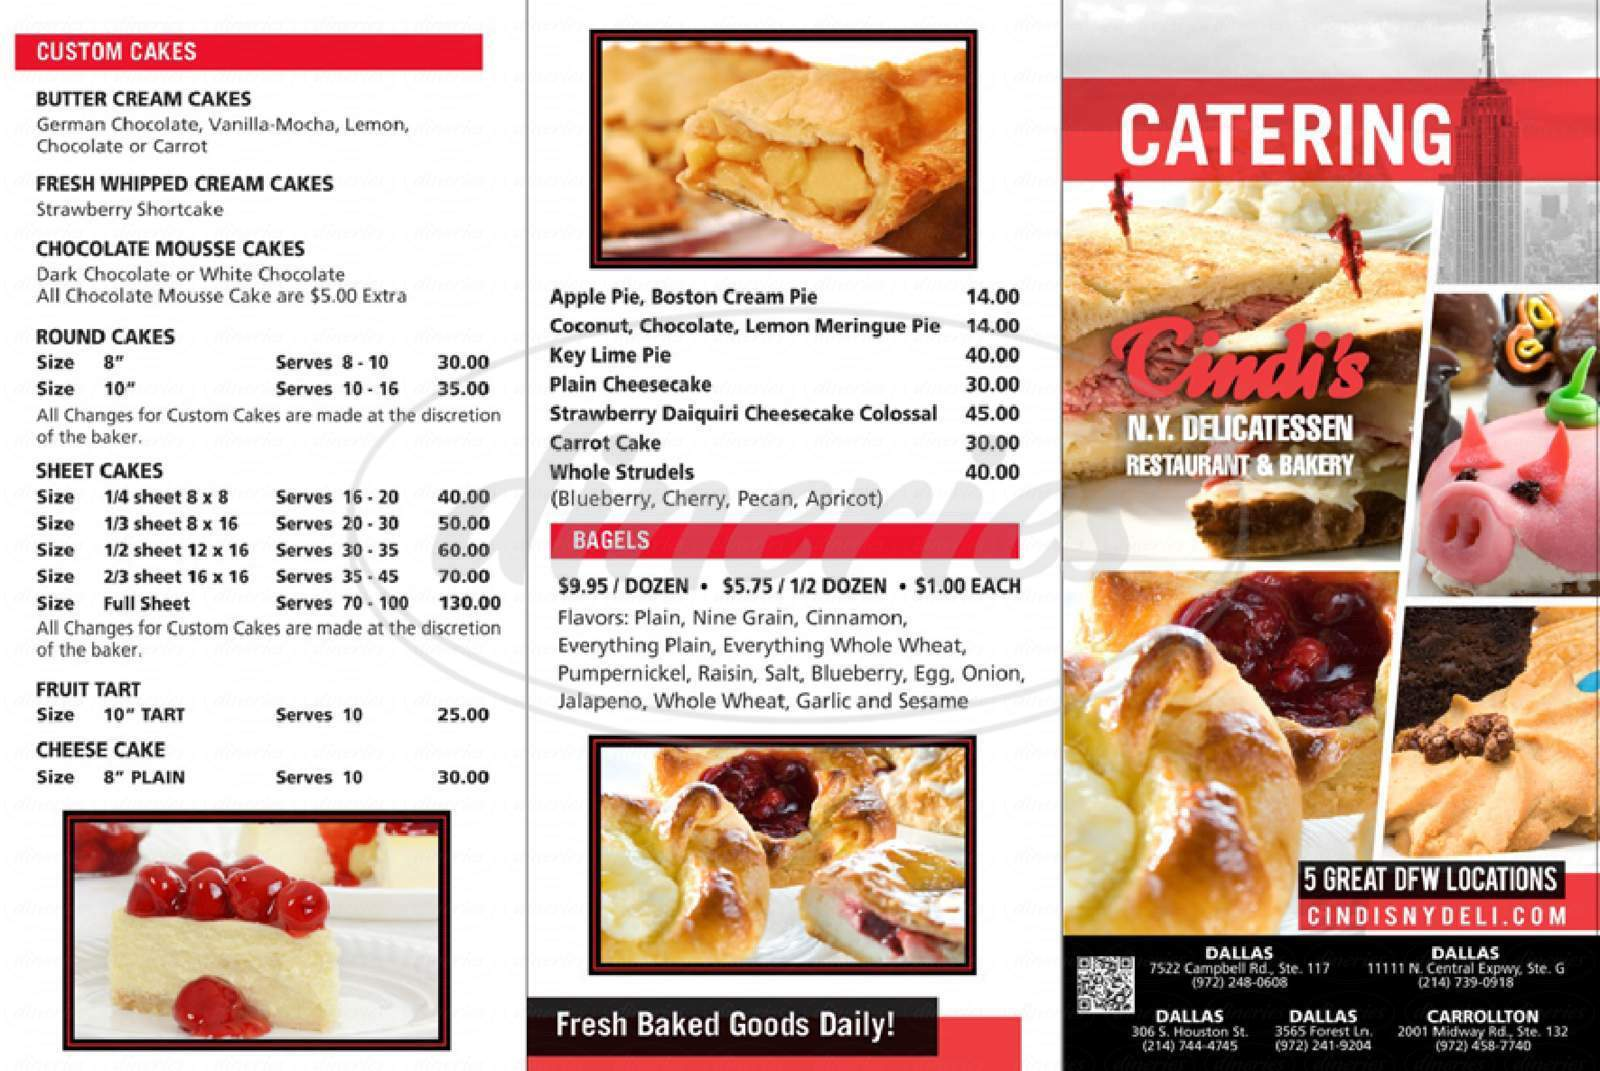 menu for Cindi's NY Delicatessen Restaurant & Bakery